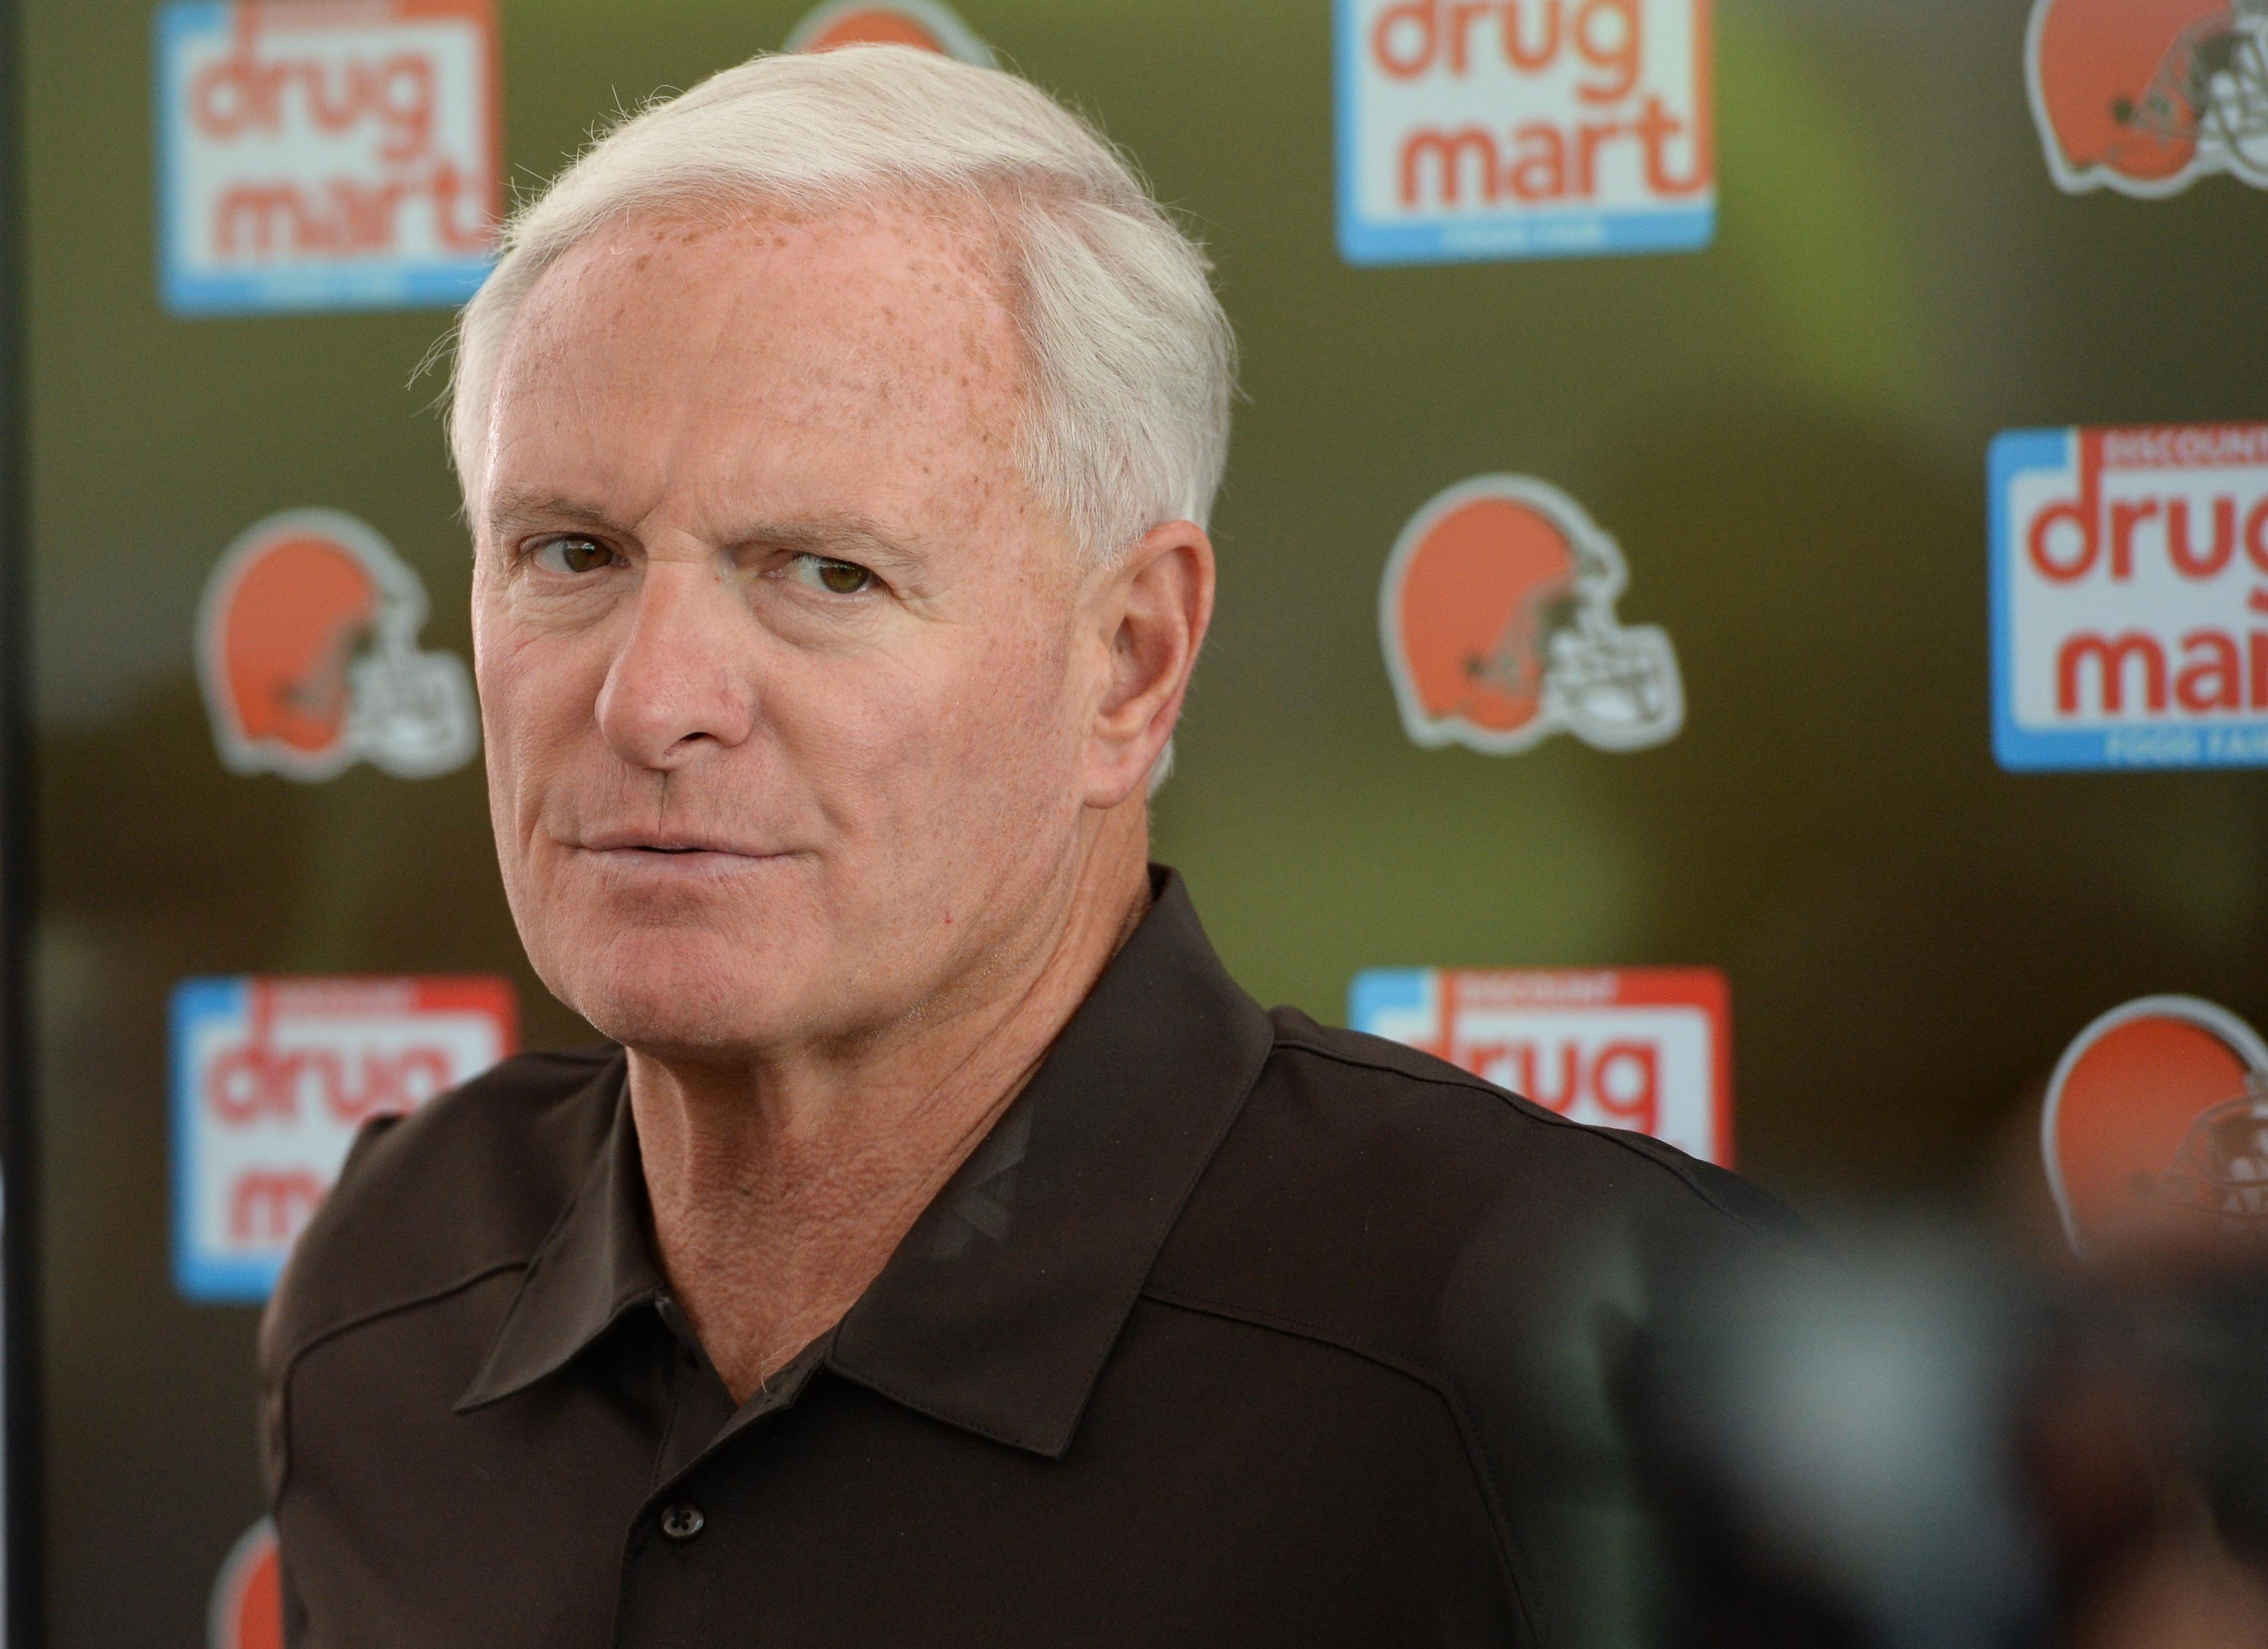 Cleveland Browns owner Jimmy Haslam (Photo by Nick Cammett/Diamond Images/Getty Images)